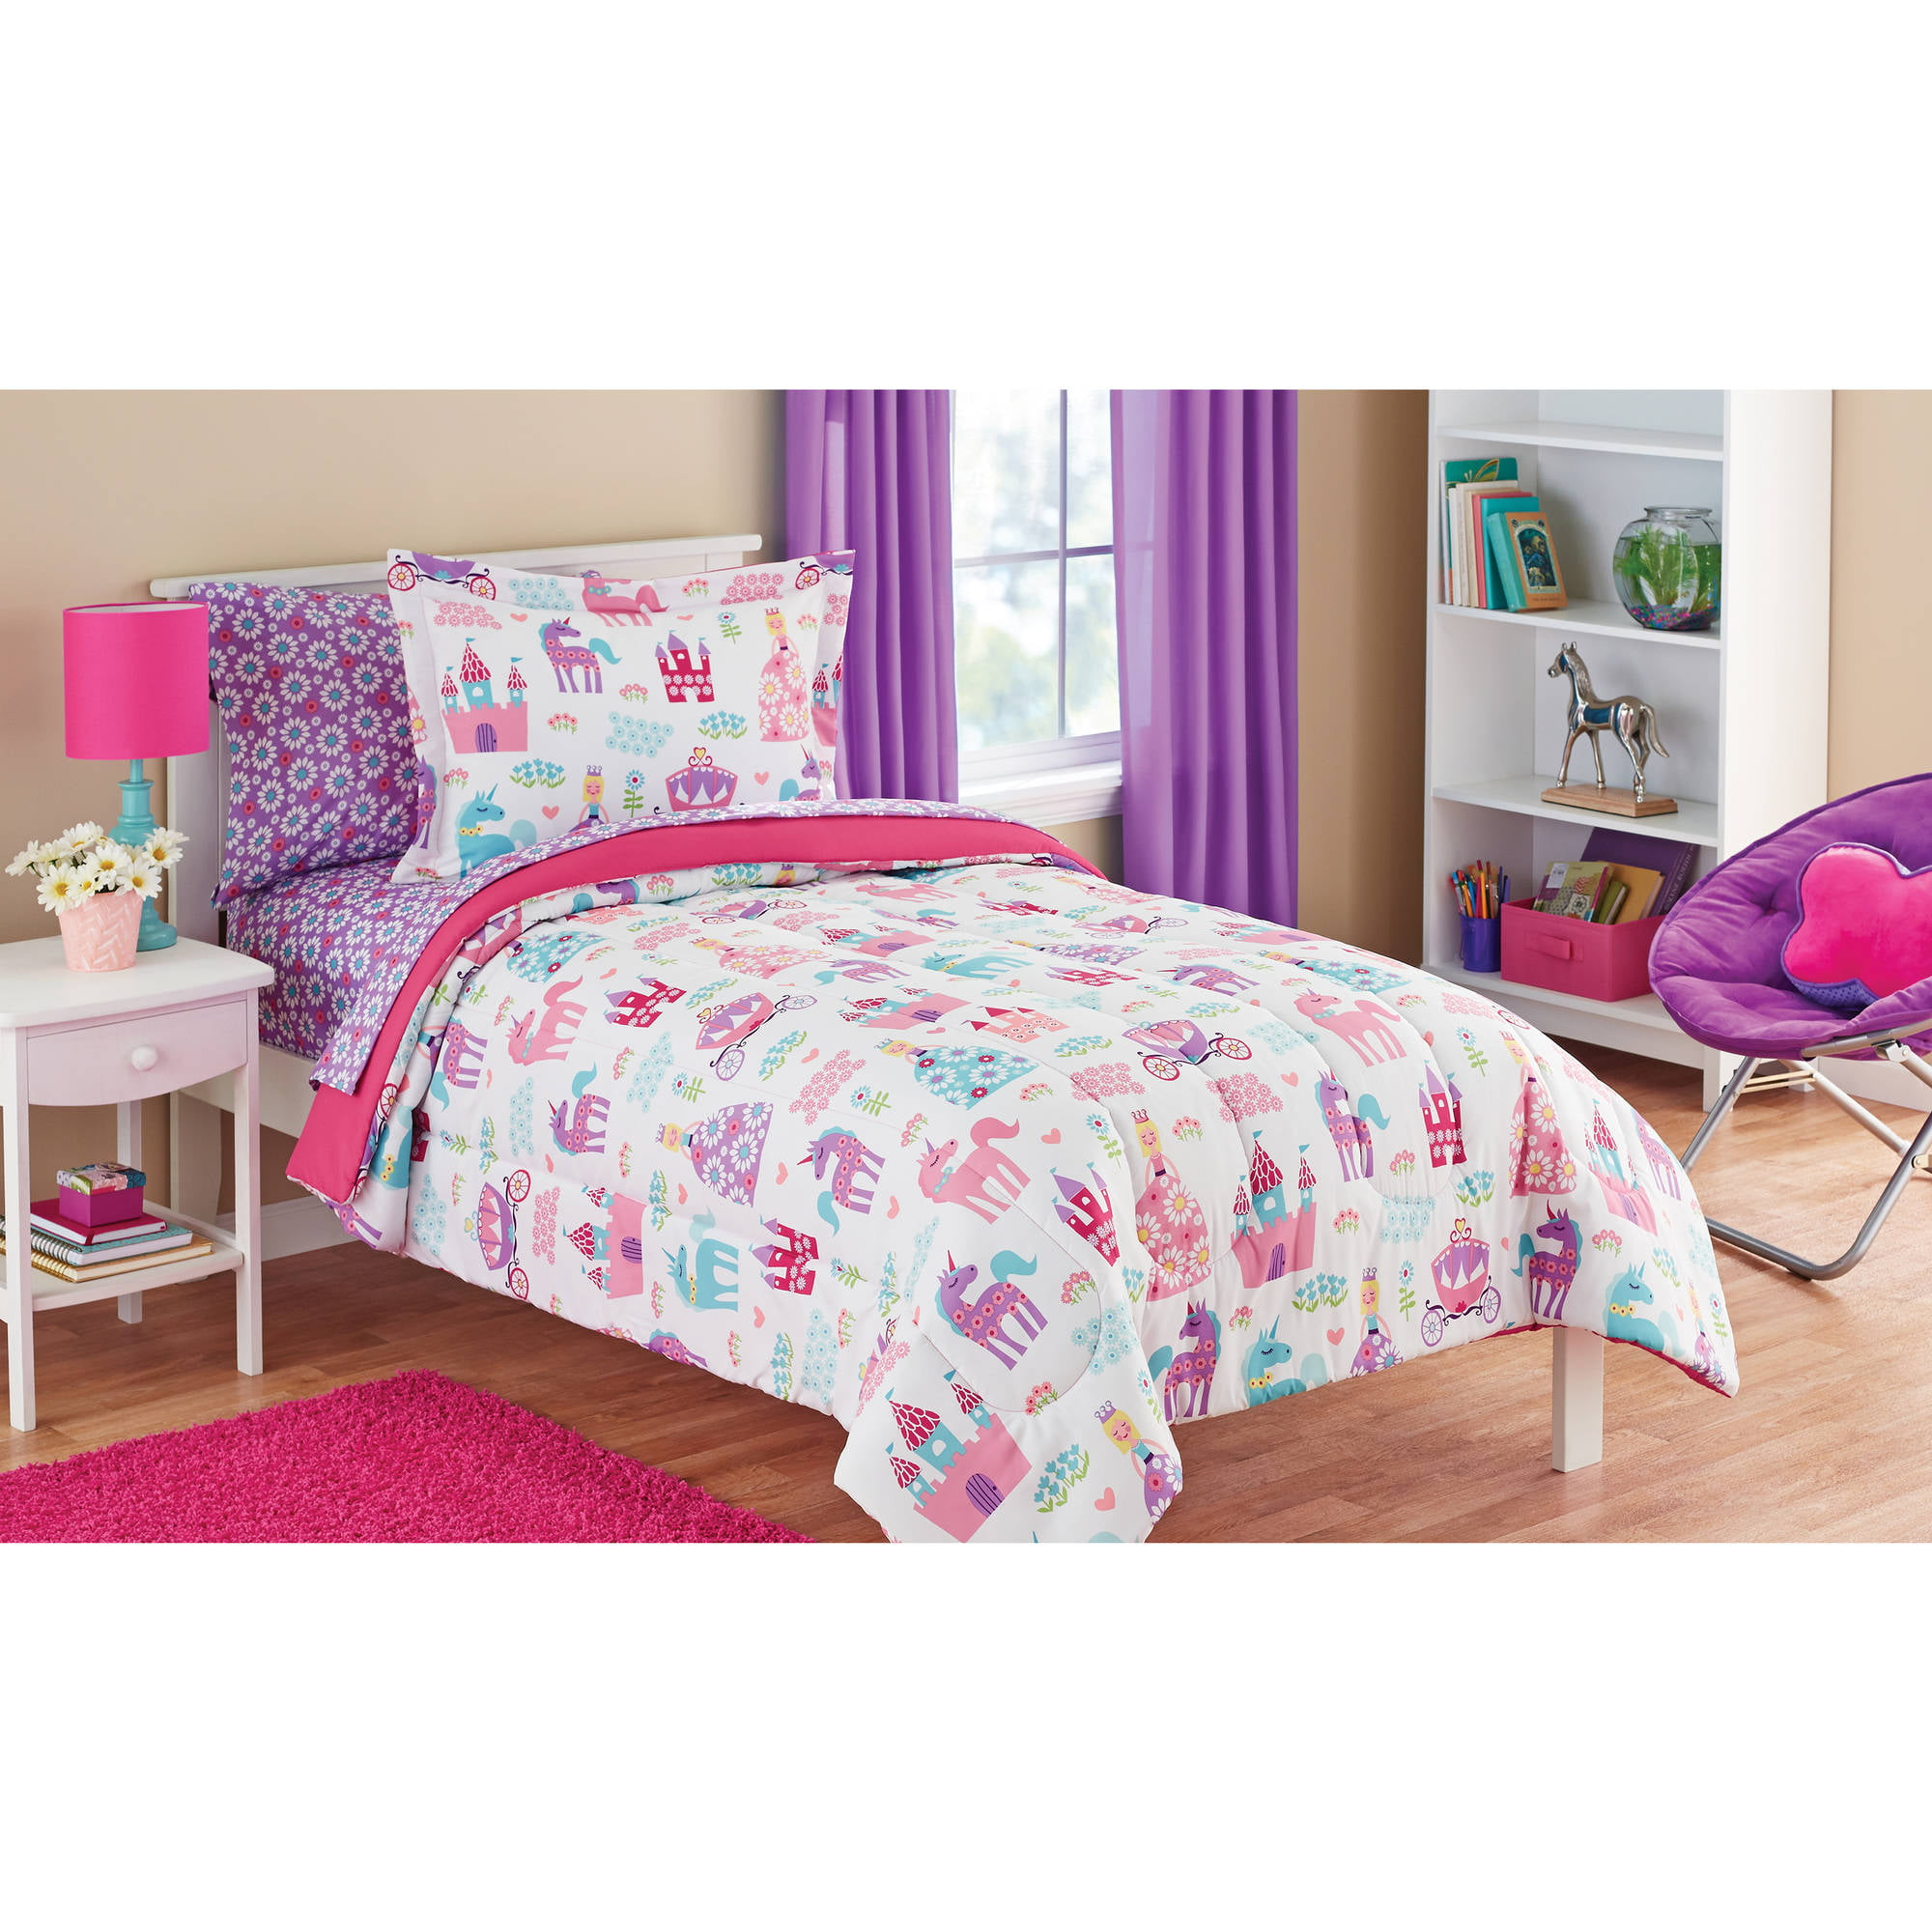 hayneedlered bedding sizered bed beautiful design of best in forter a red teal annie bag sets new king set queen leopard kids save and toile purple pink